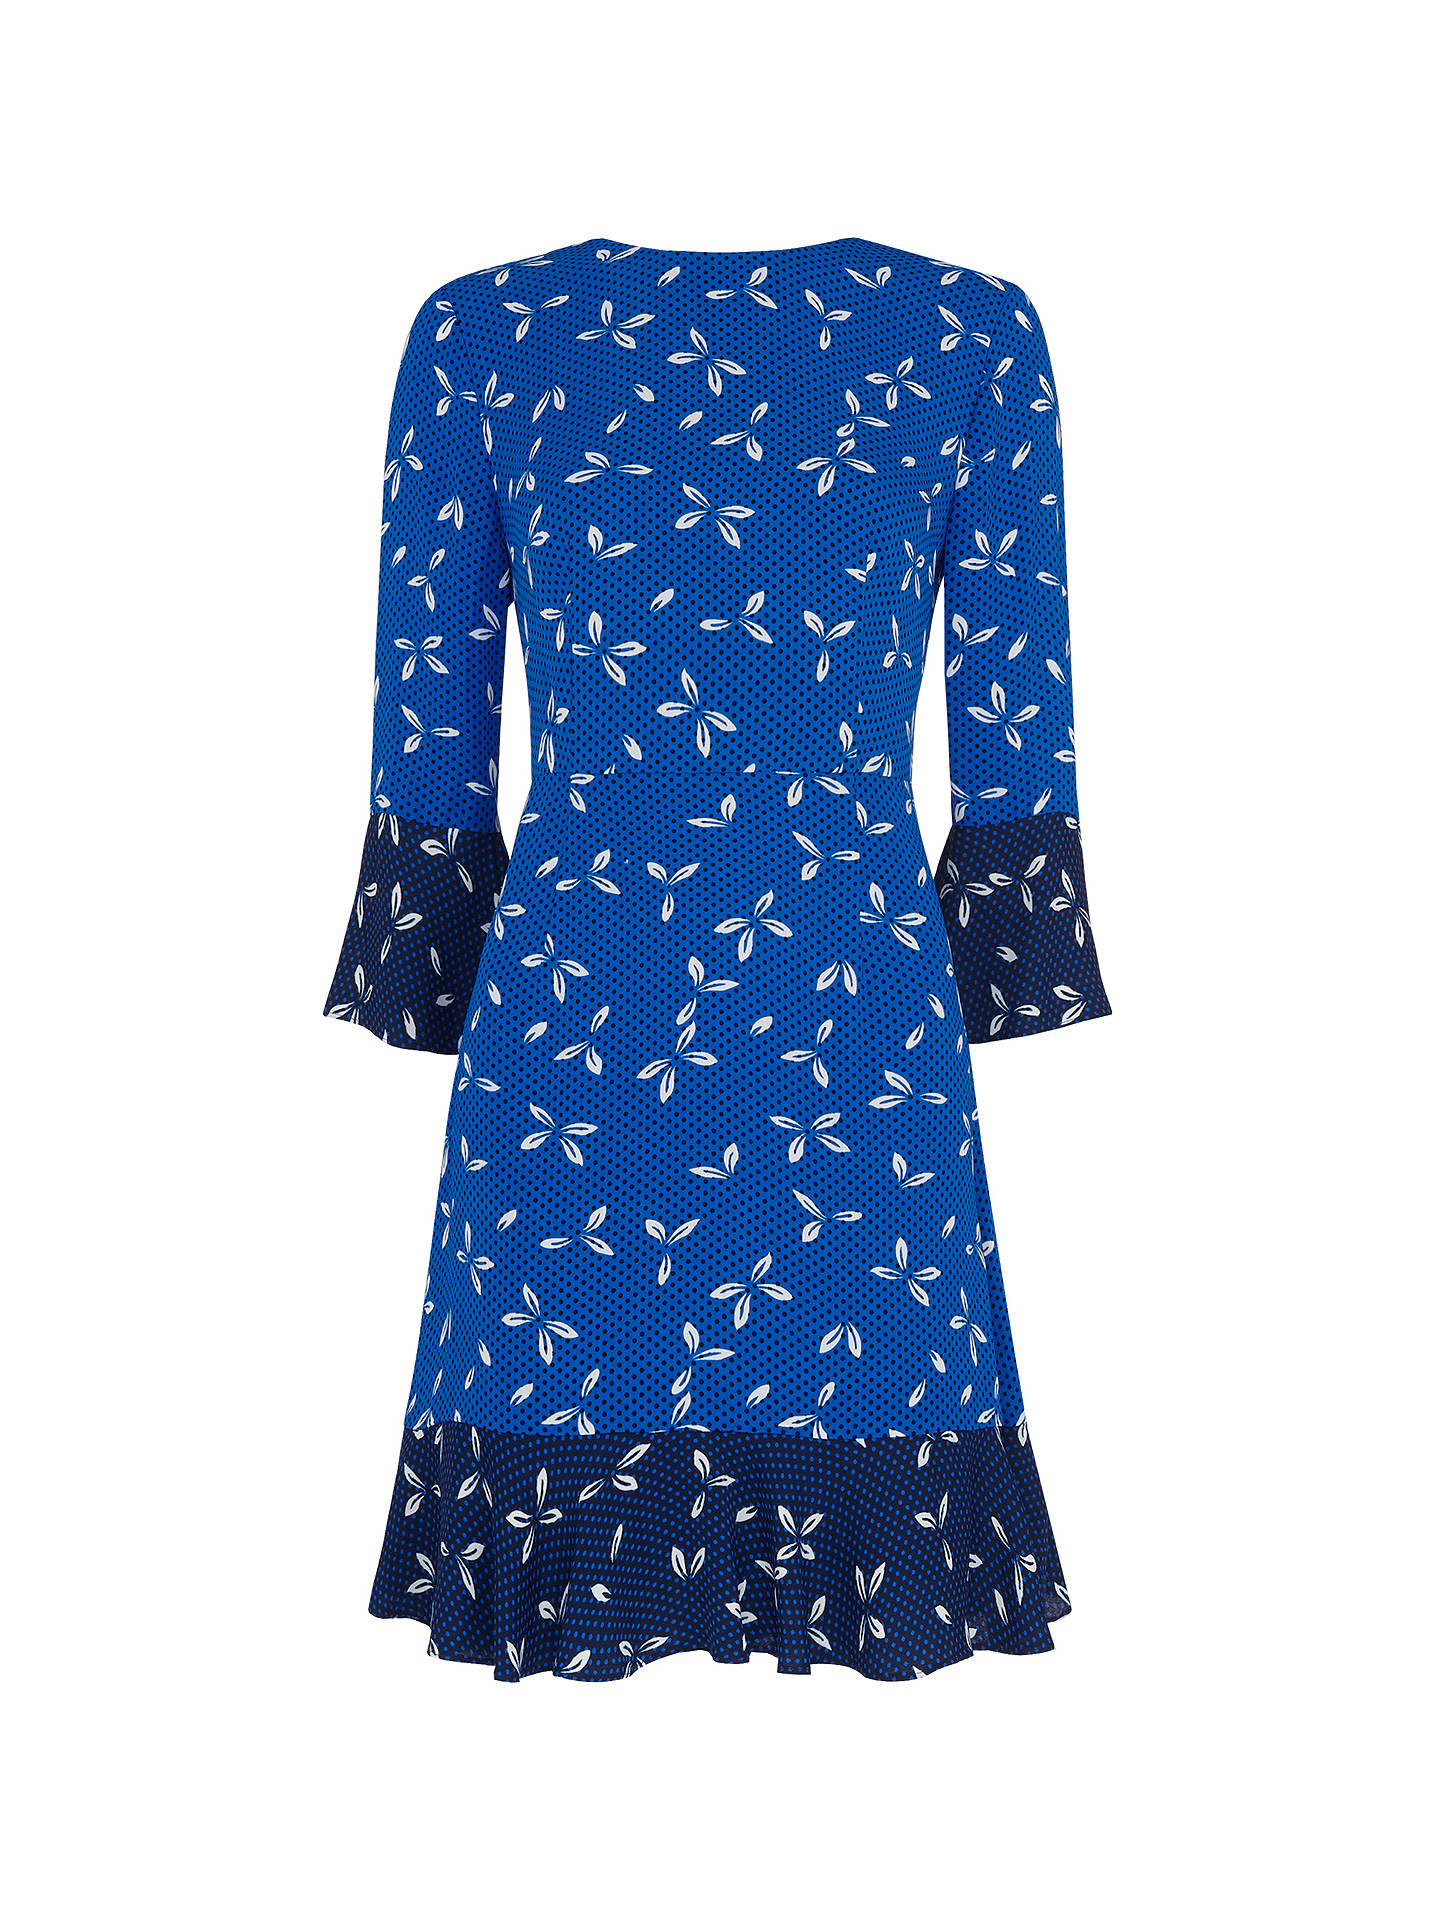 BuyWhistles Polly Spot Print, Blue/Multi, 6 Online at johnlewis.com